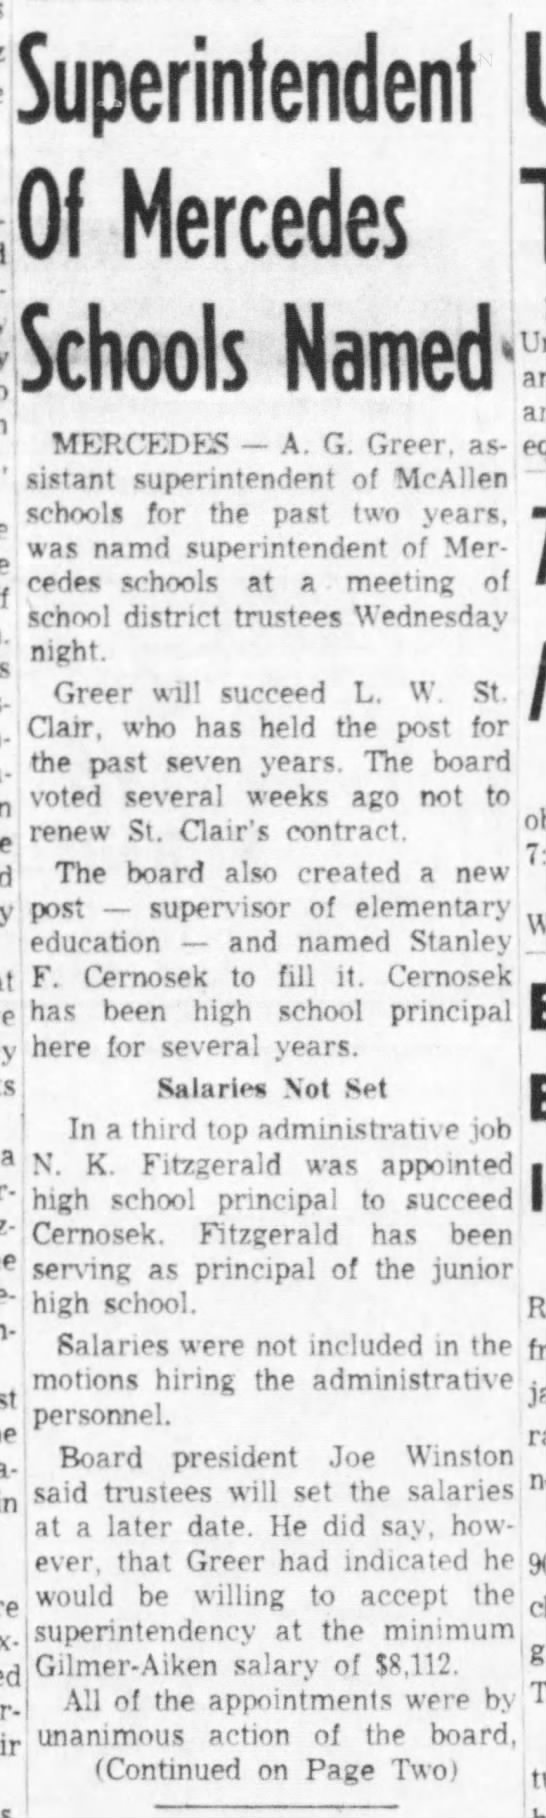 Superintendent Greer Named - Valley Morning Star May 15 1958 -